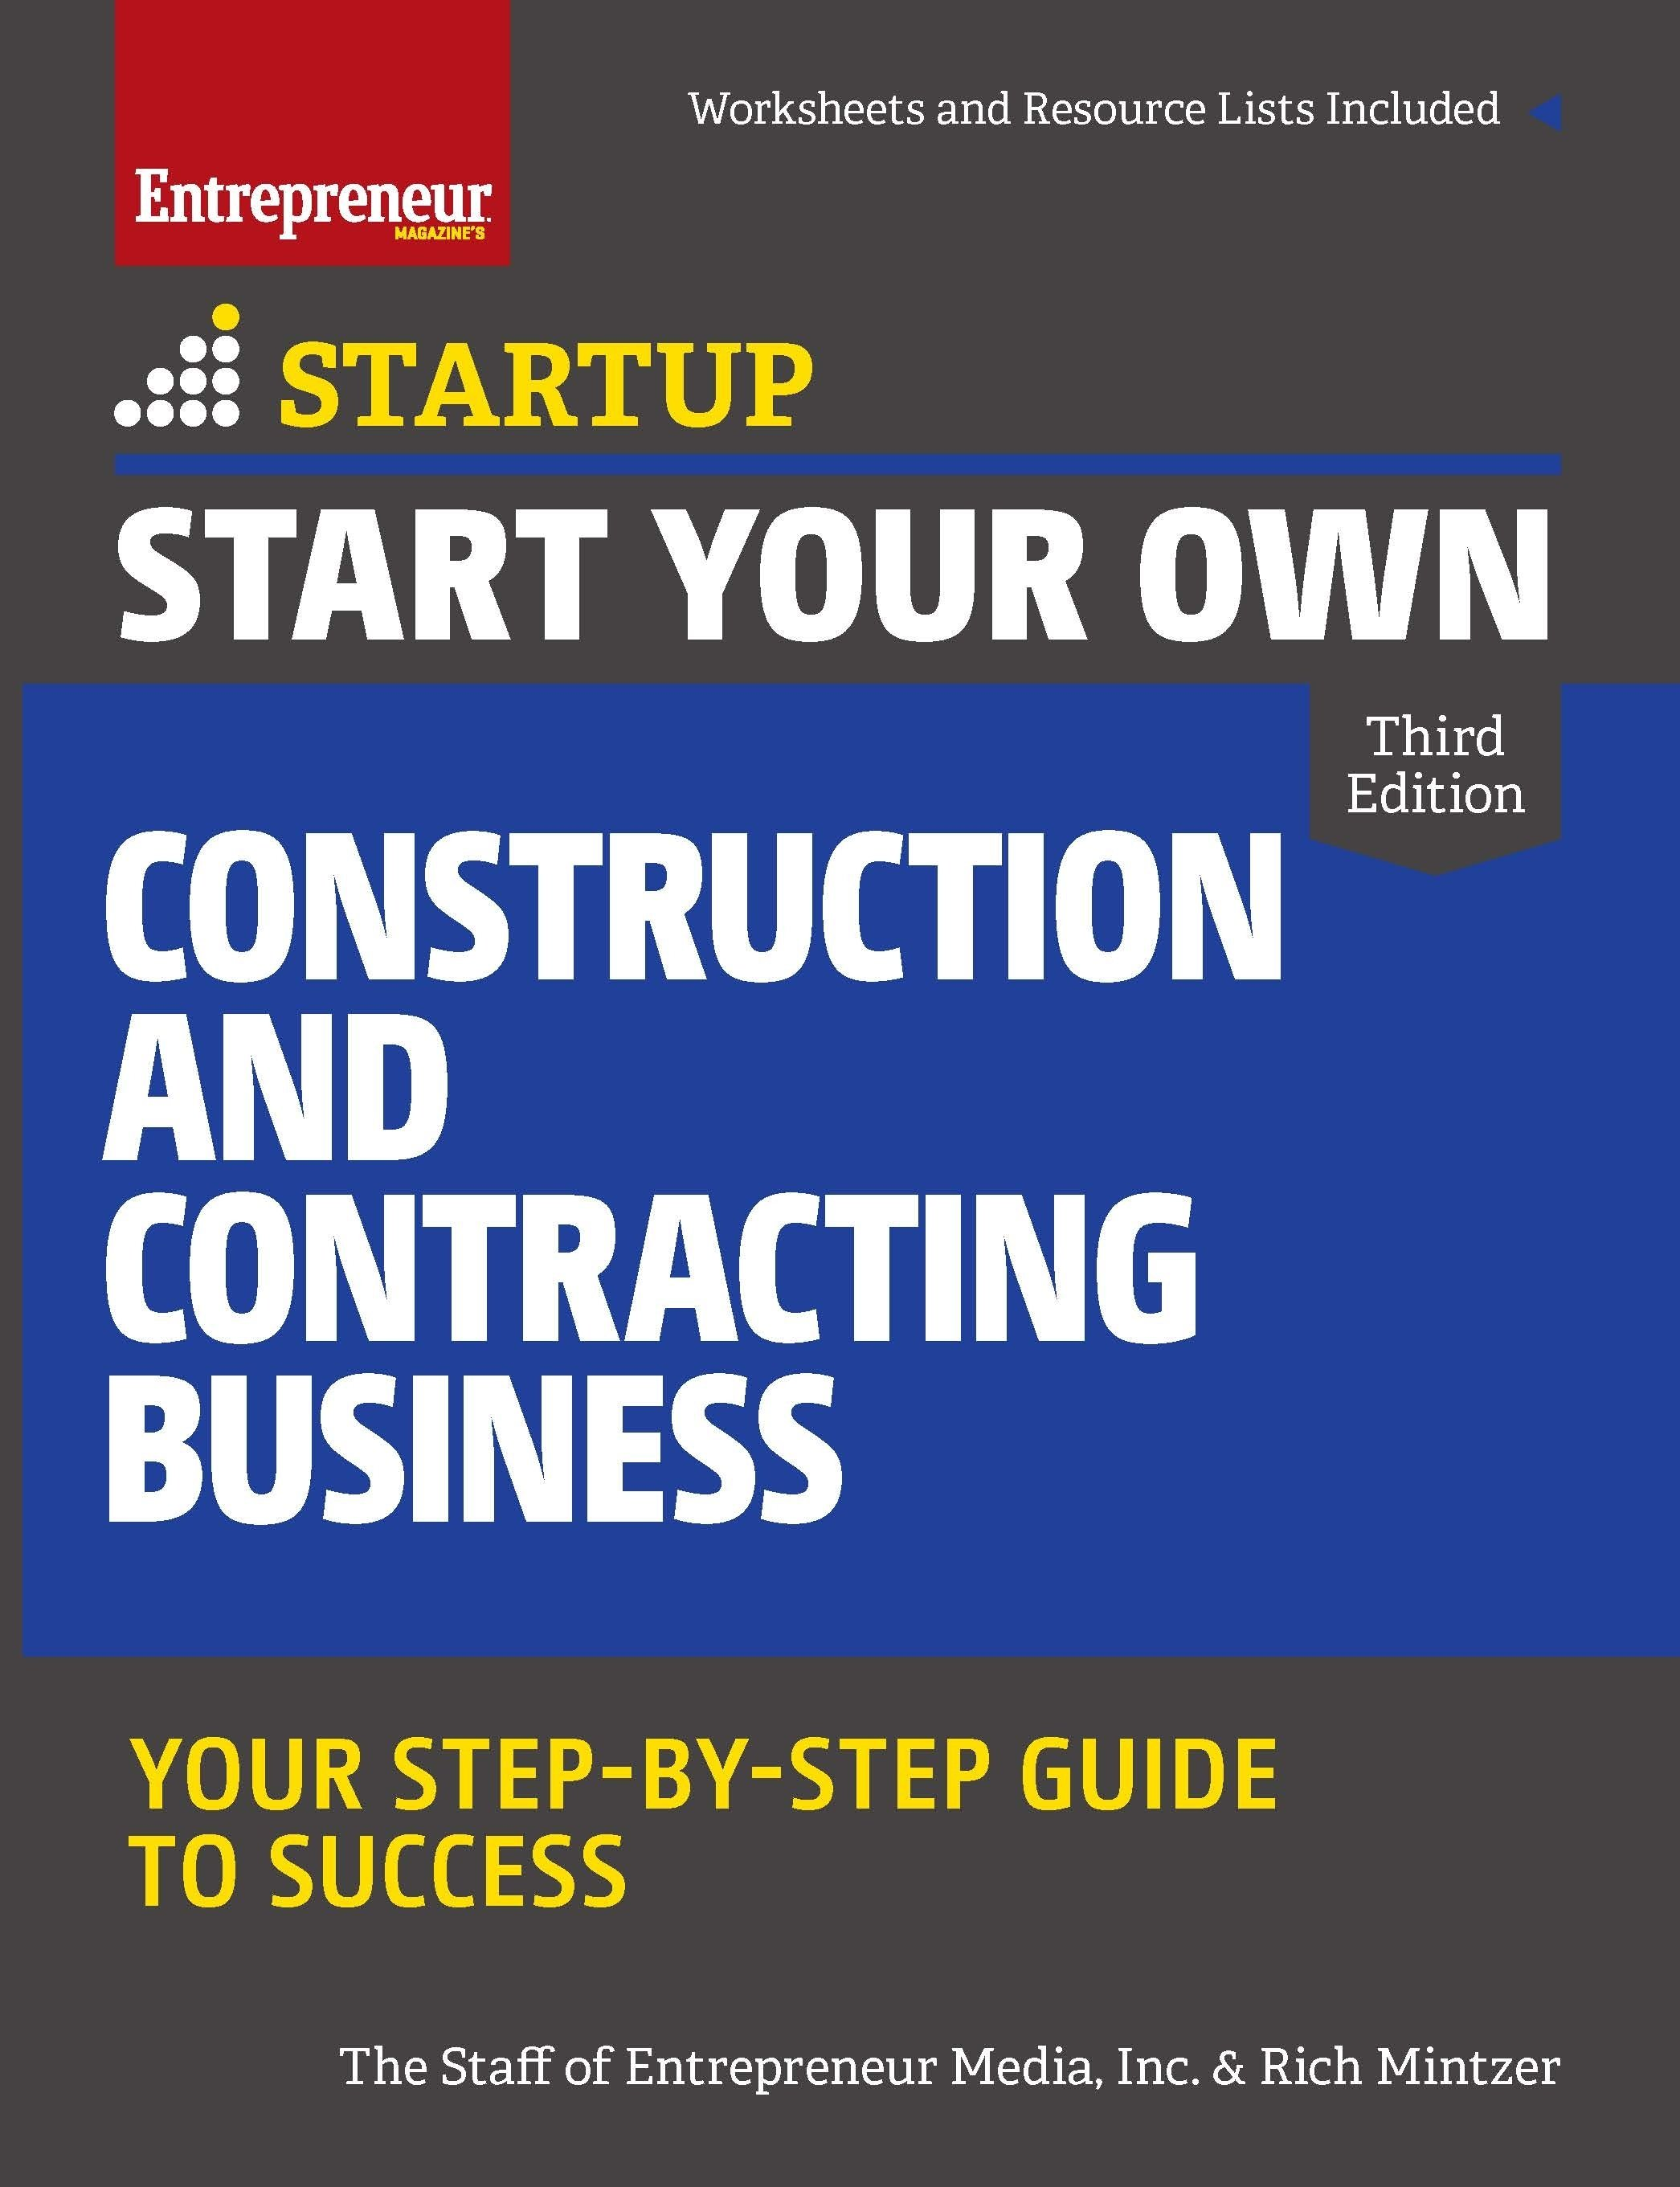 10 Lovable Starting Your Own Business Ideas start your own construction and contracting business 3 2021